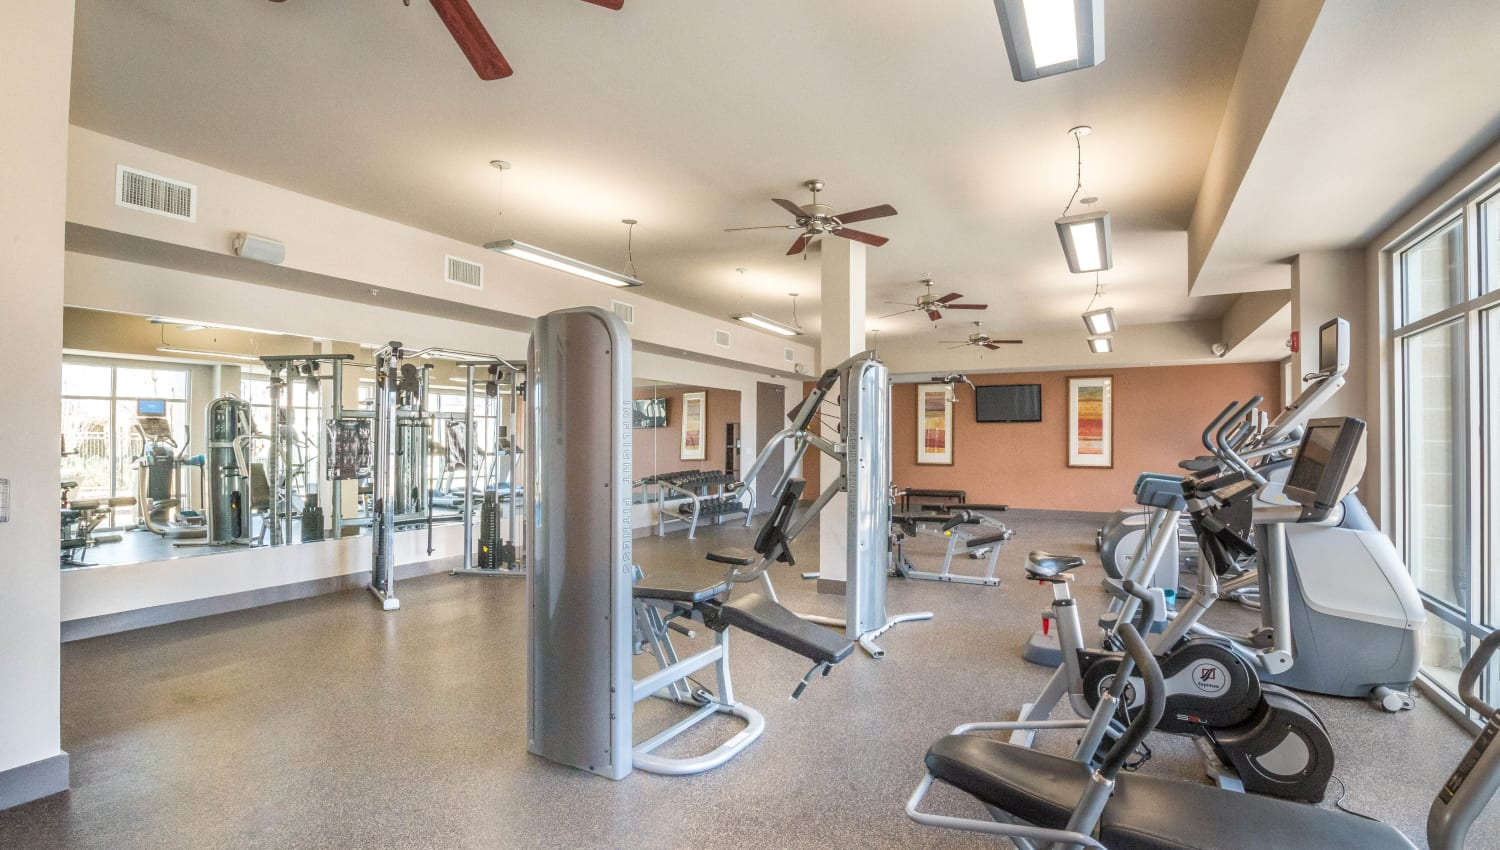 Exercise machines in the fitness center at Union At Carrollton Square in Carrollton, Texas